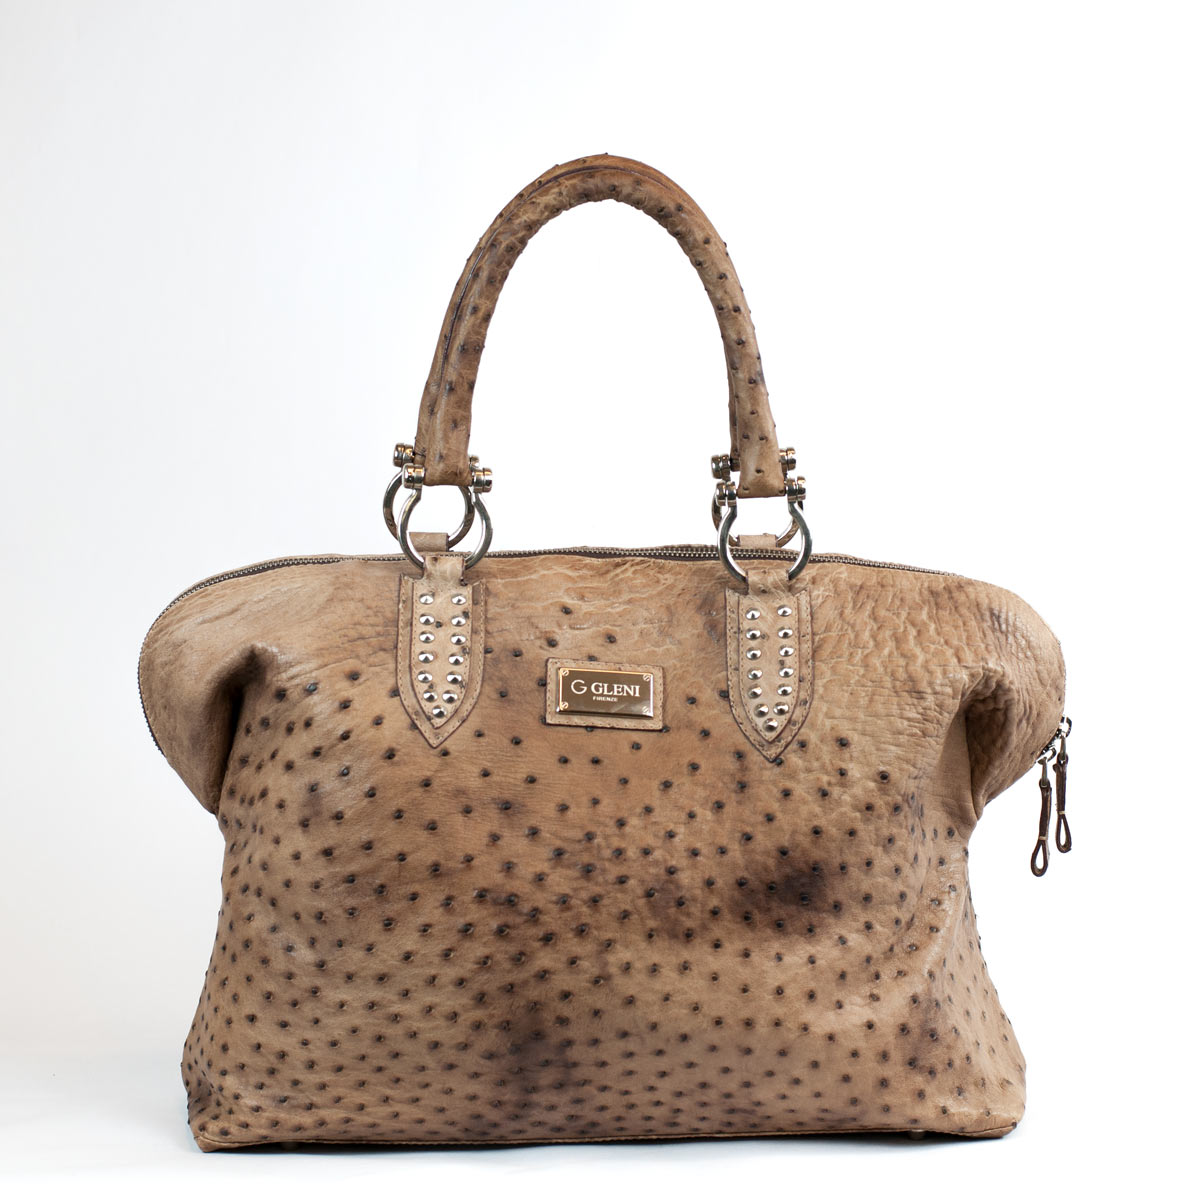 6ea667b92186 Ostrich leather handbag in brown with darker spots